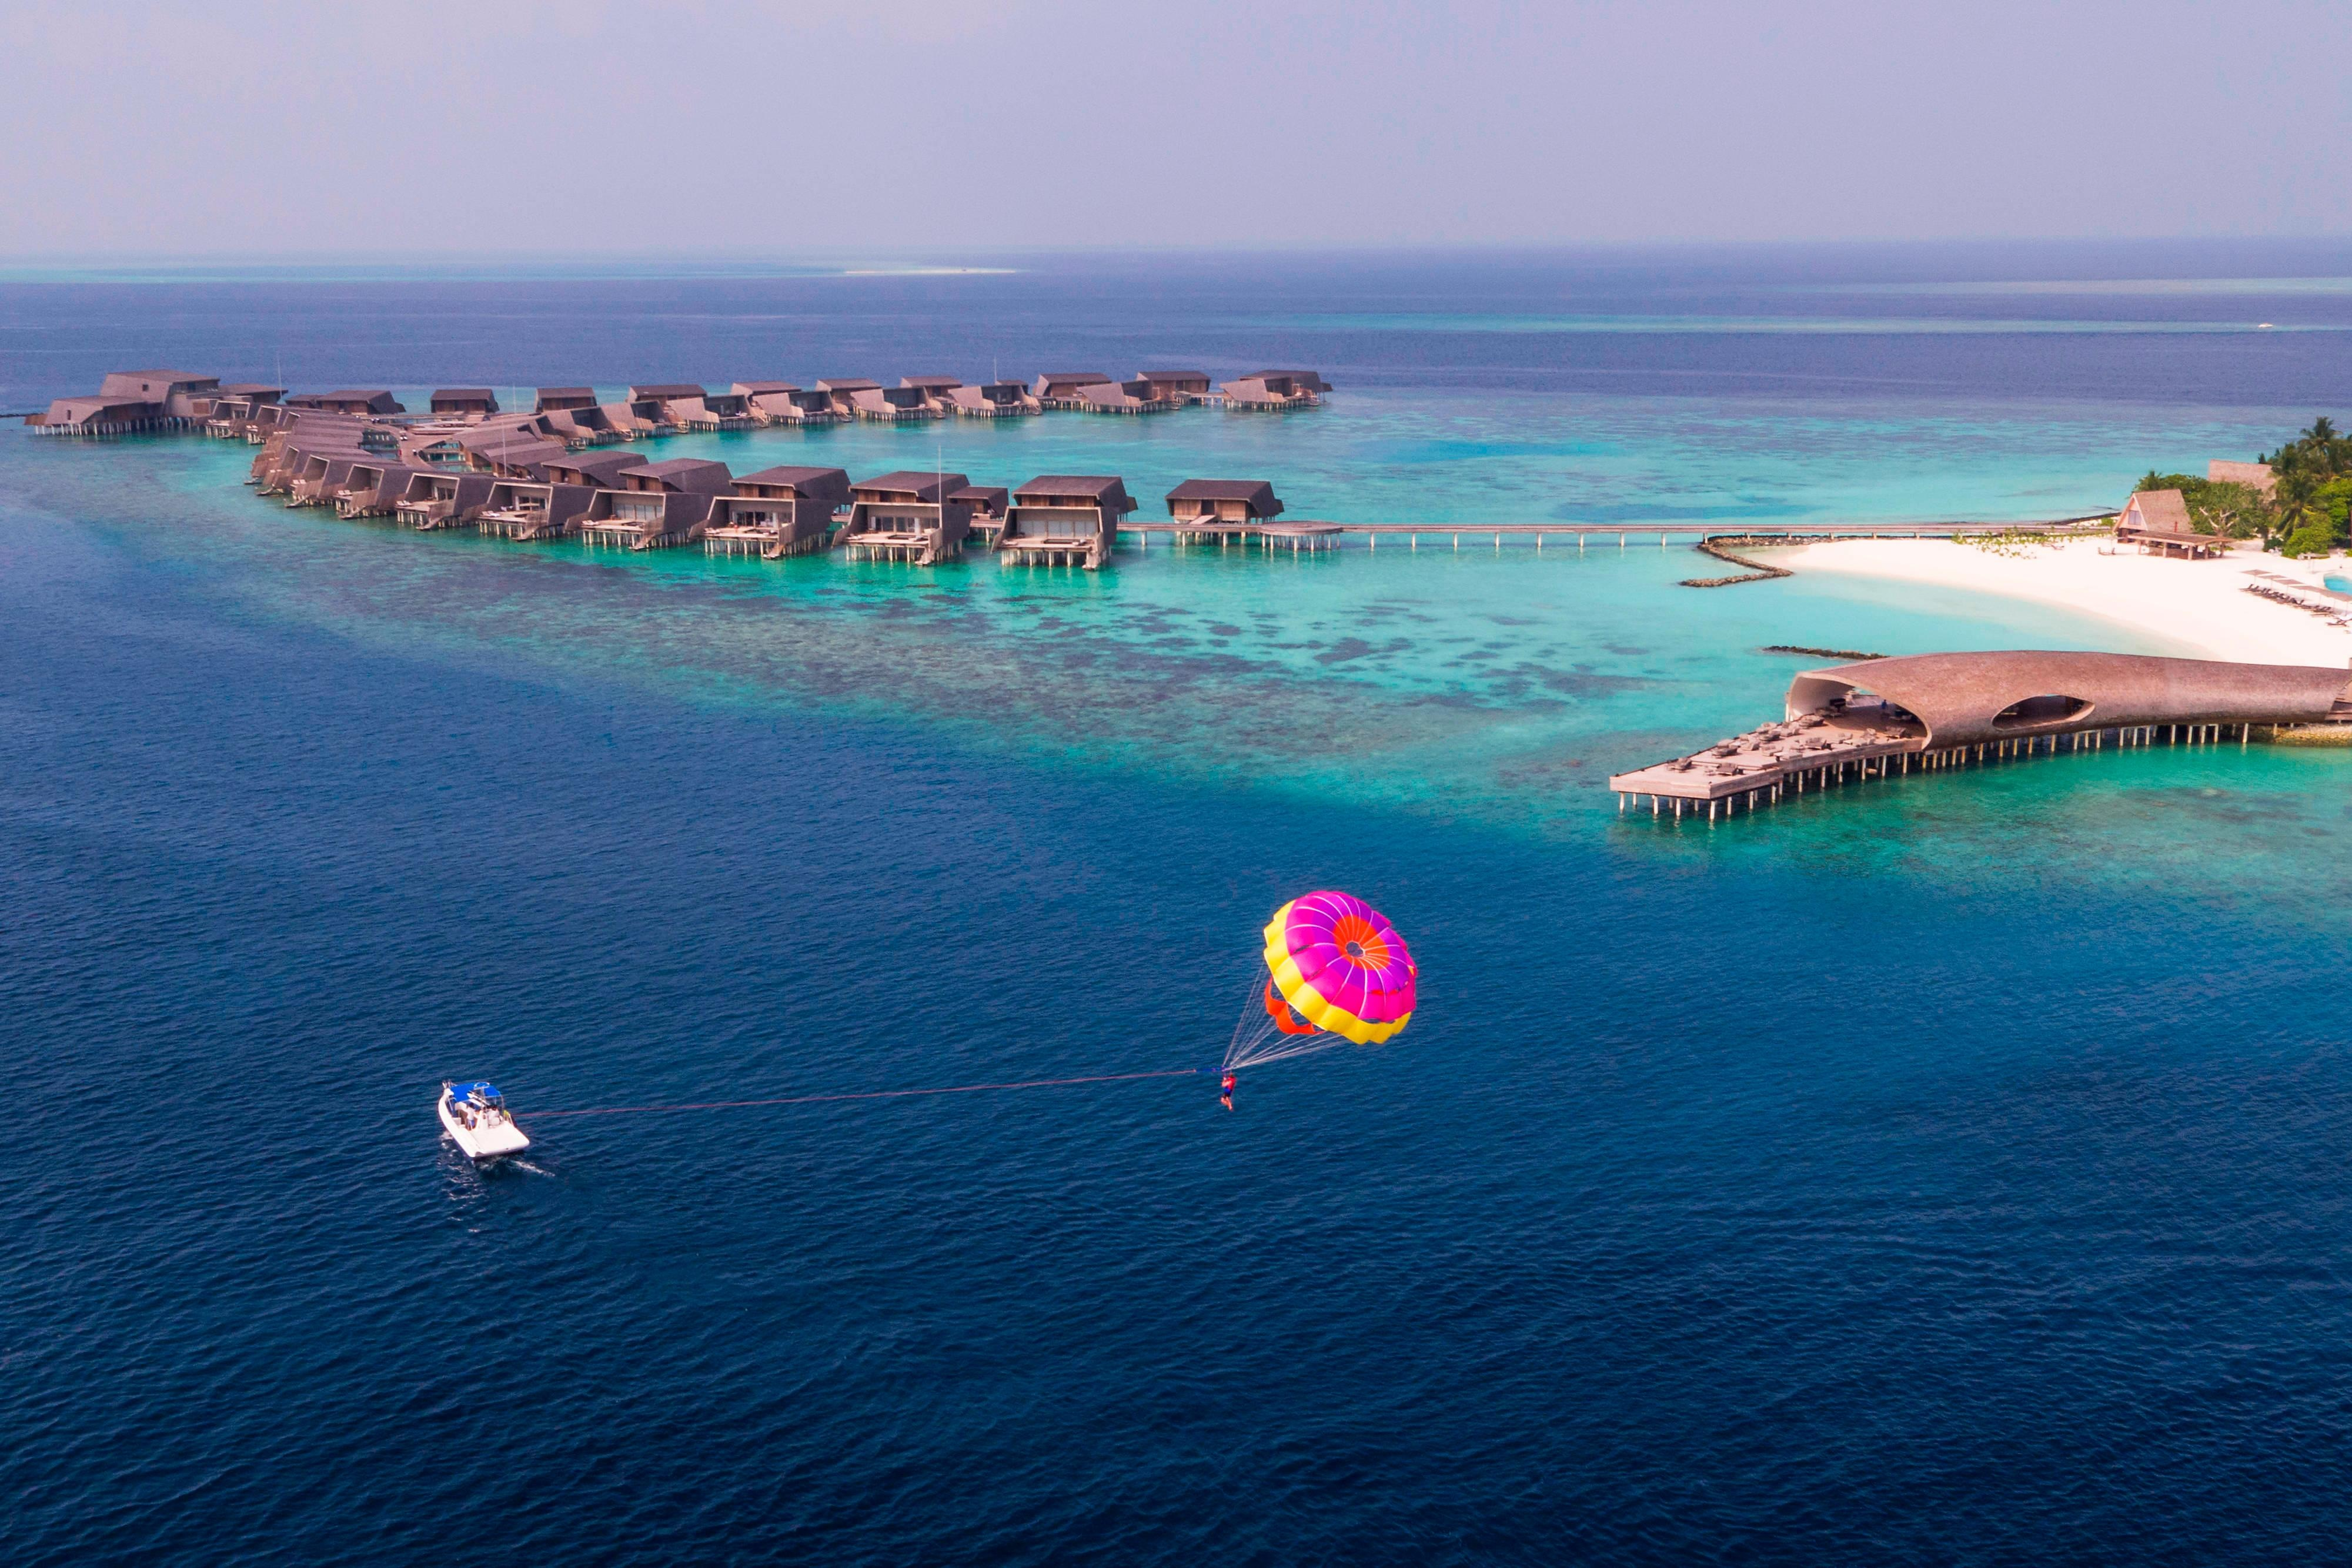 Watersport Parasailing